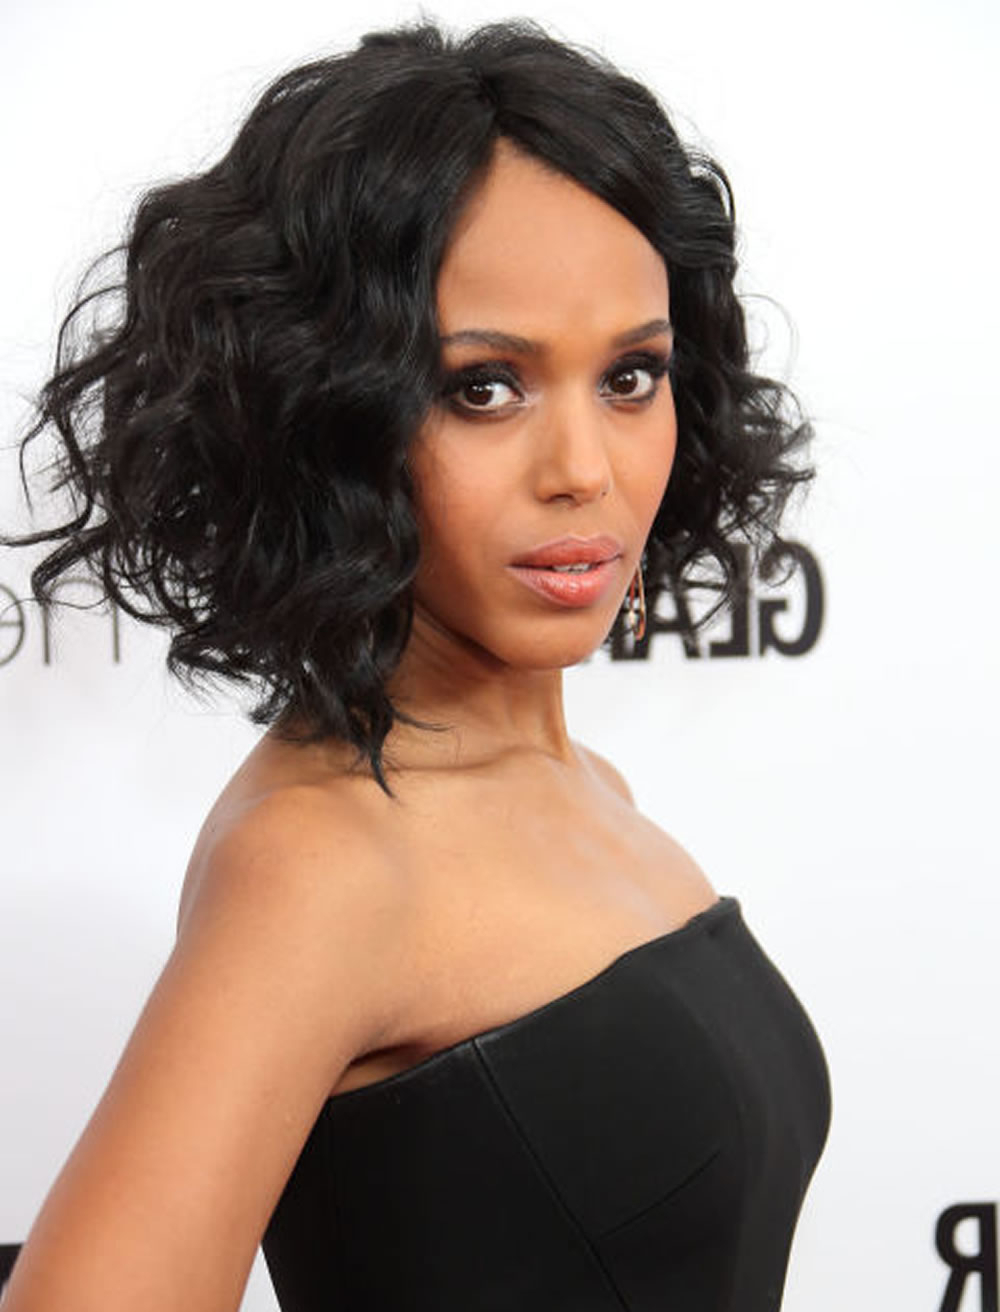 2018 Short Bob Hairstyles For Black Women – 26 Excellent Bob Cut Pertaining To Bob Short Hairstyles For Black Women (View 10 of 25)